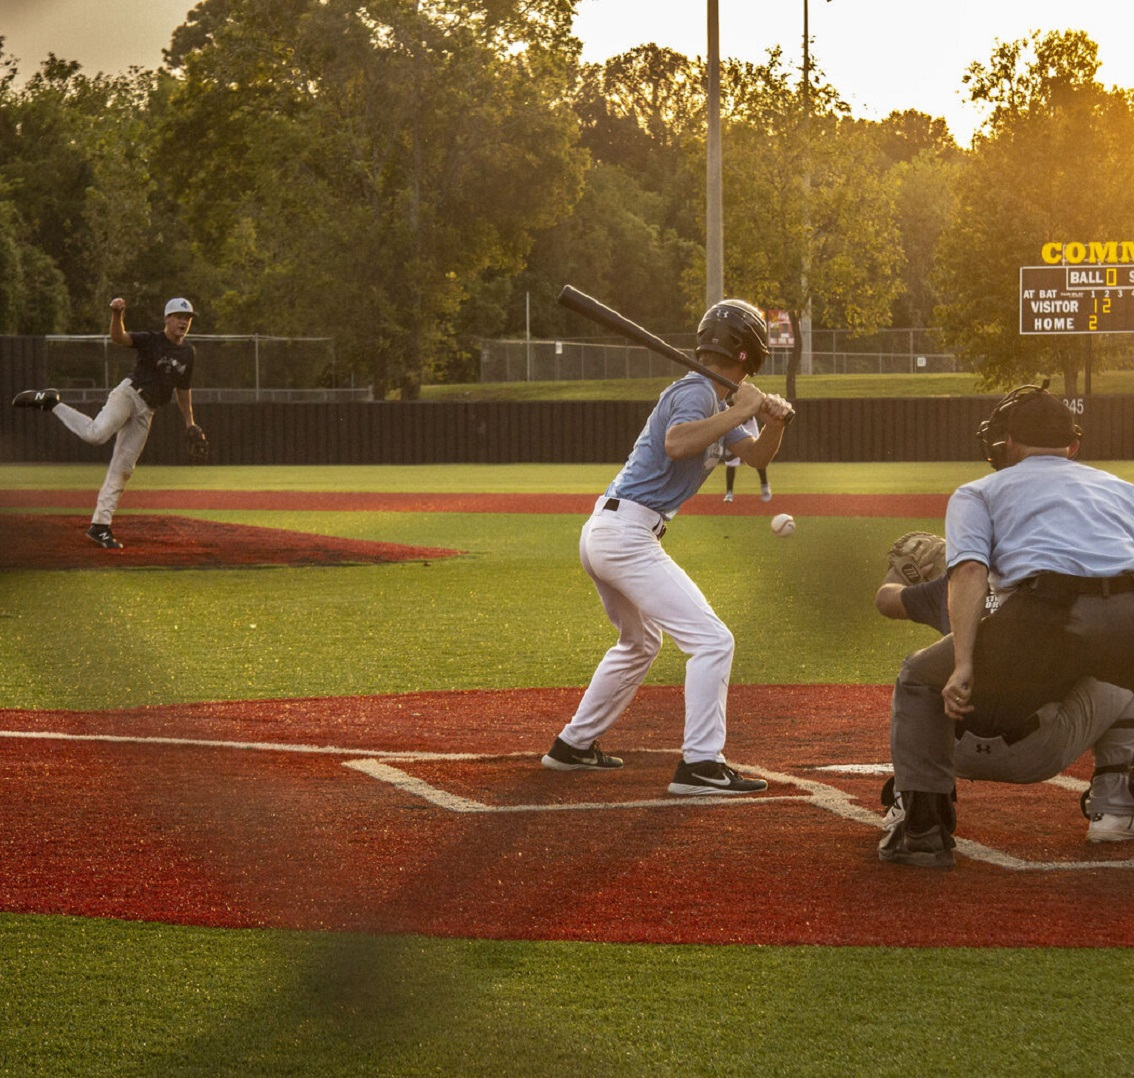 Things To Consider For Fall Baseball